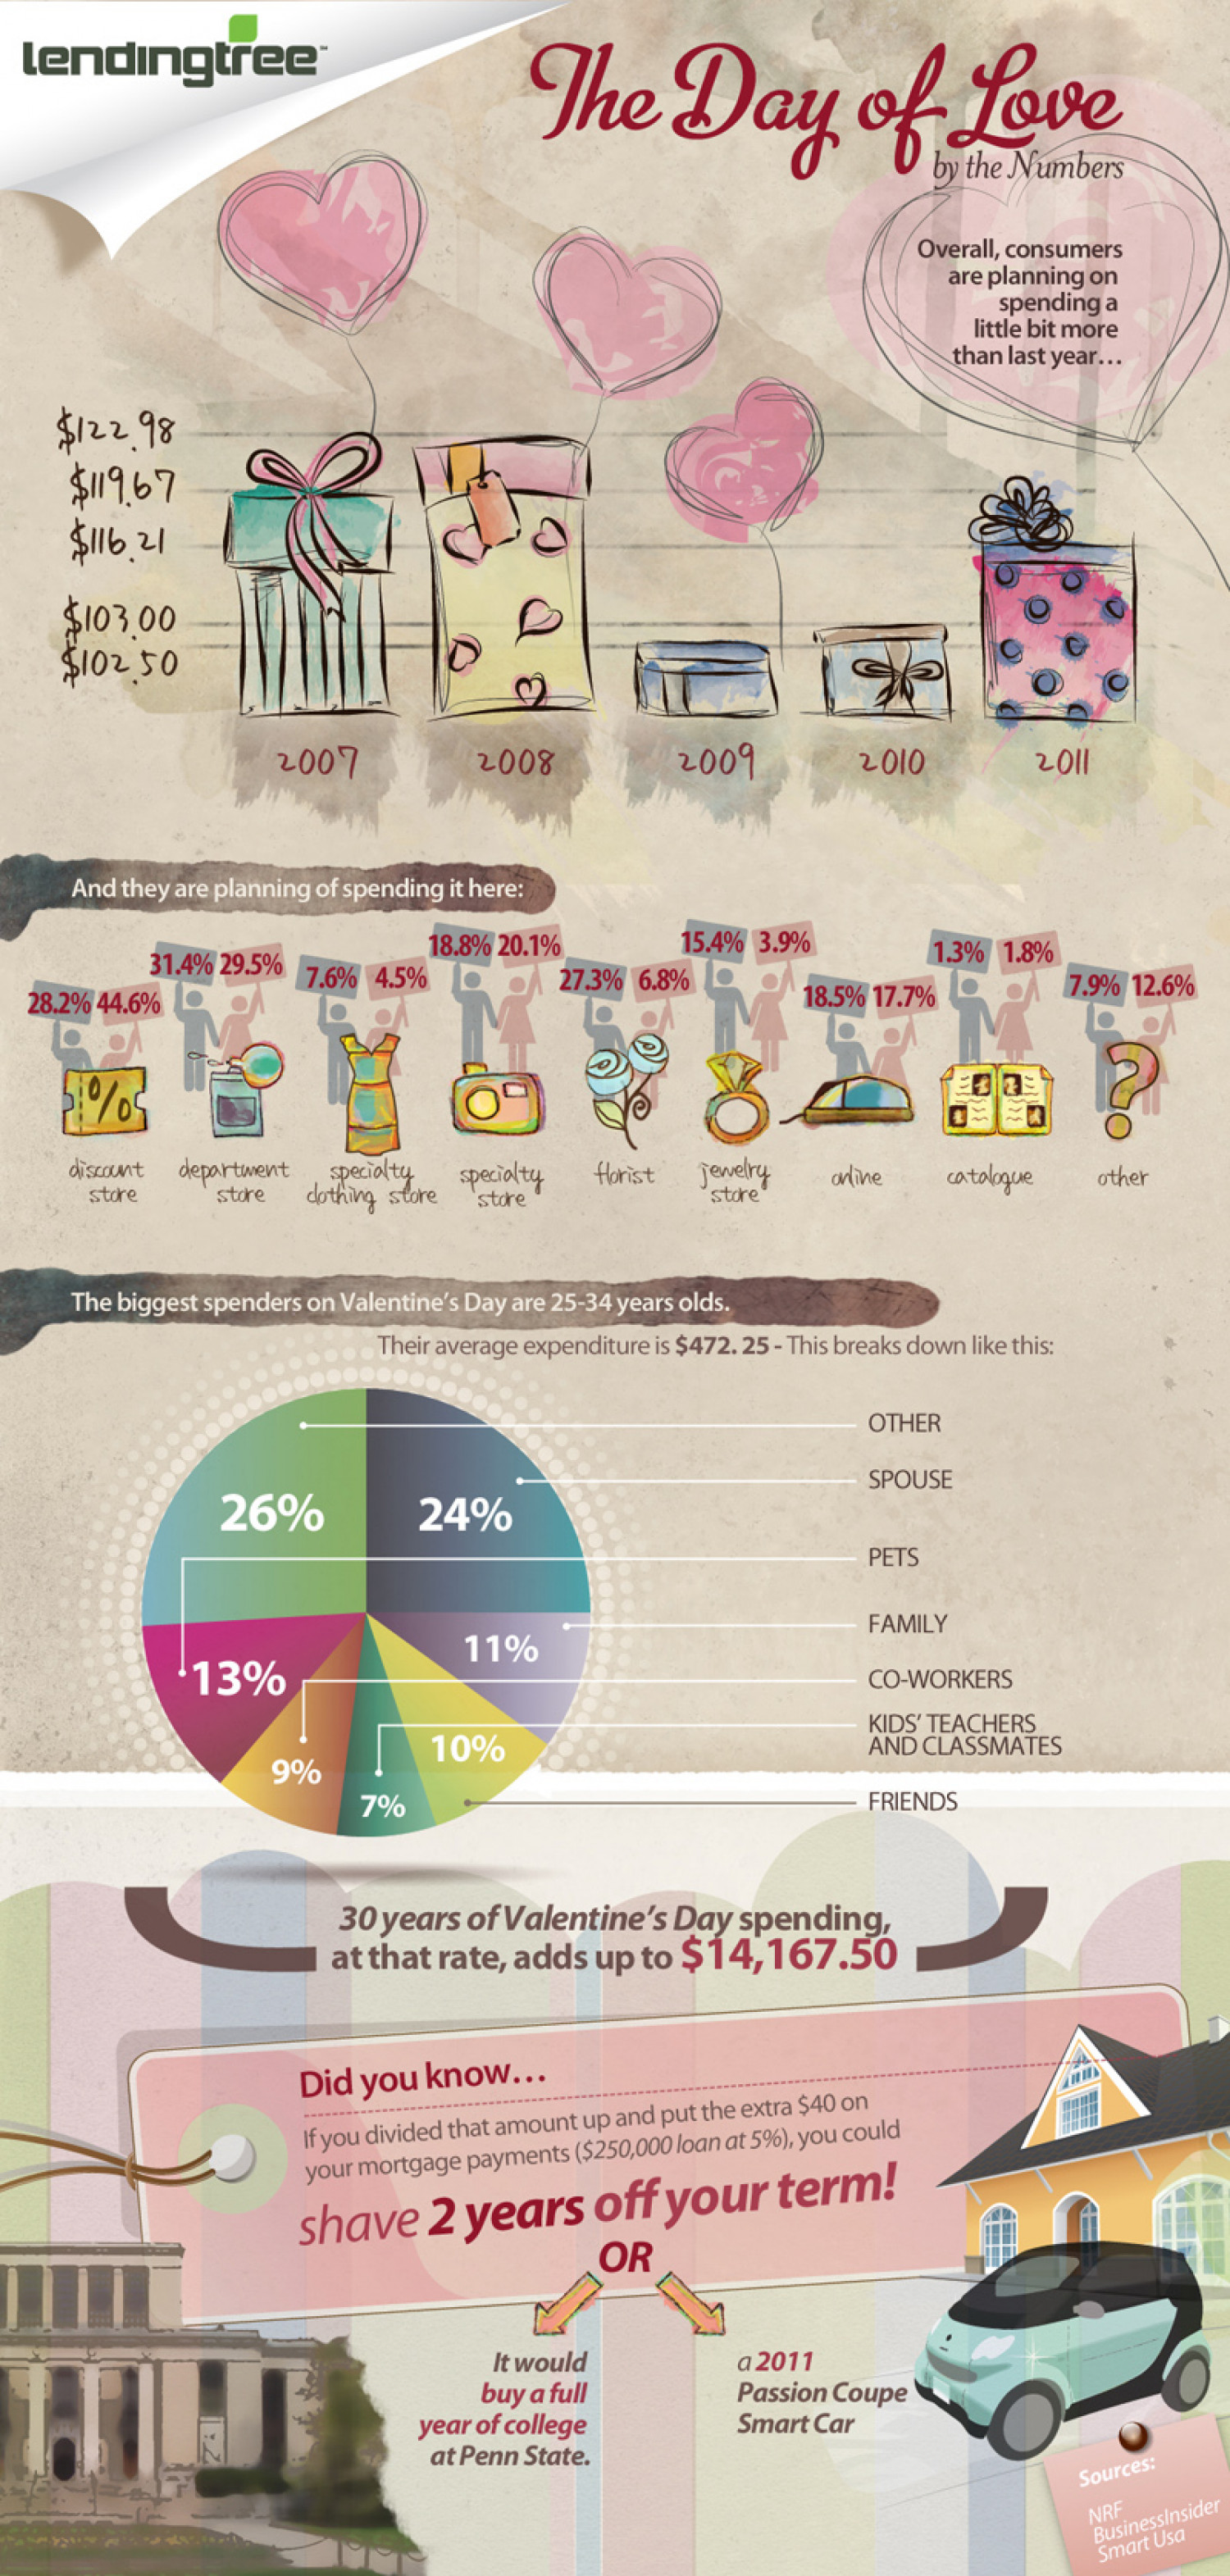 The Day of Love by Numbers Infographic